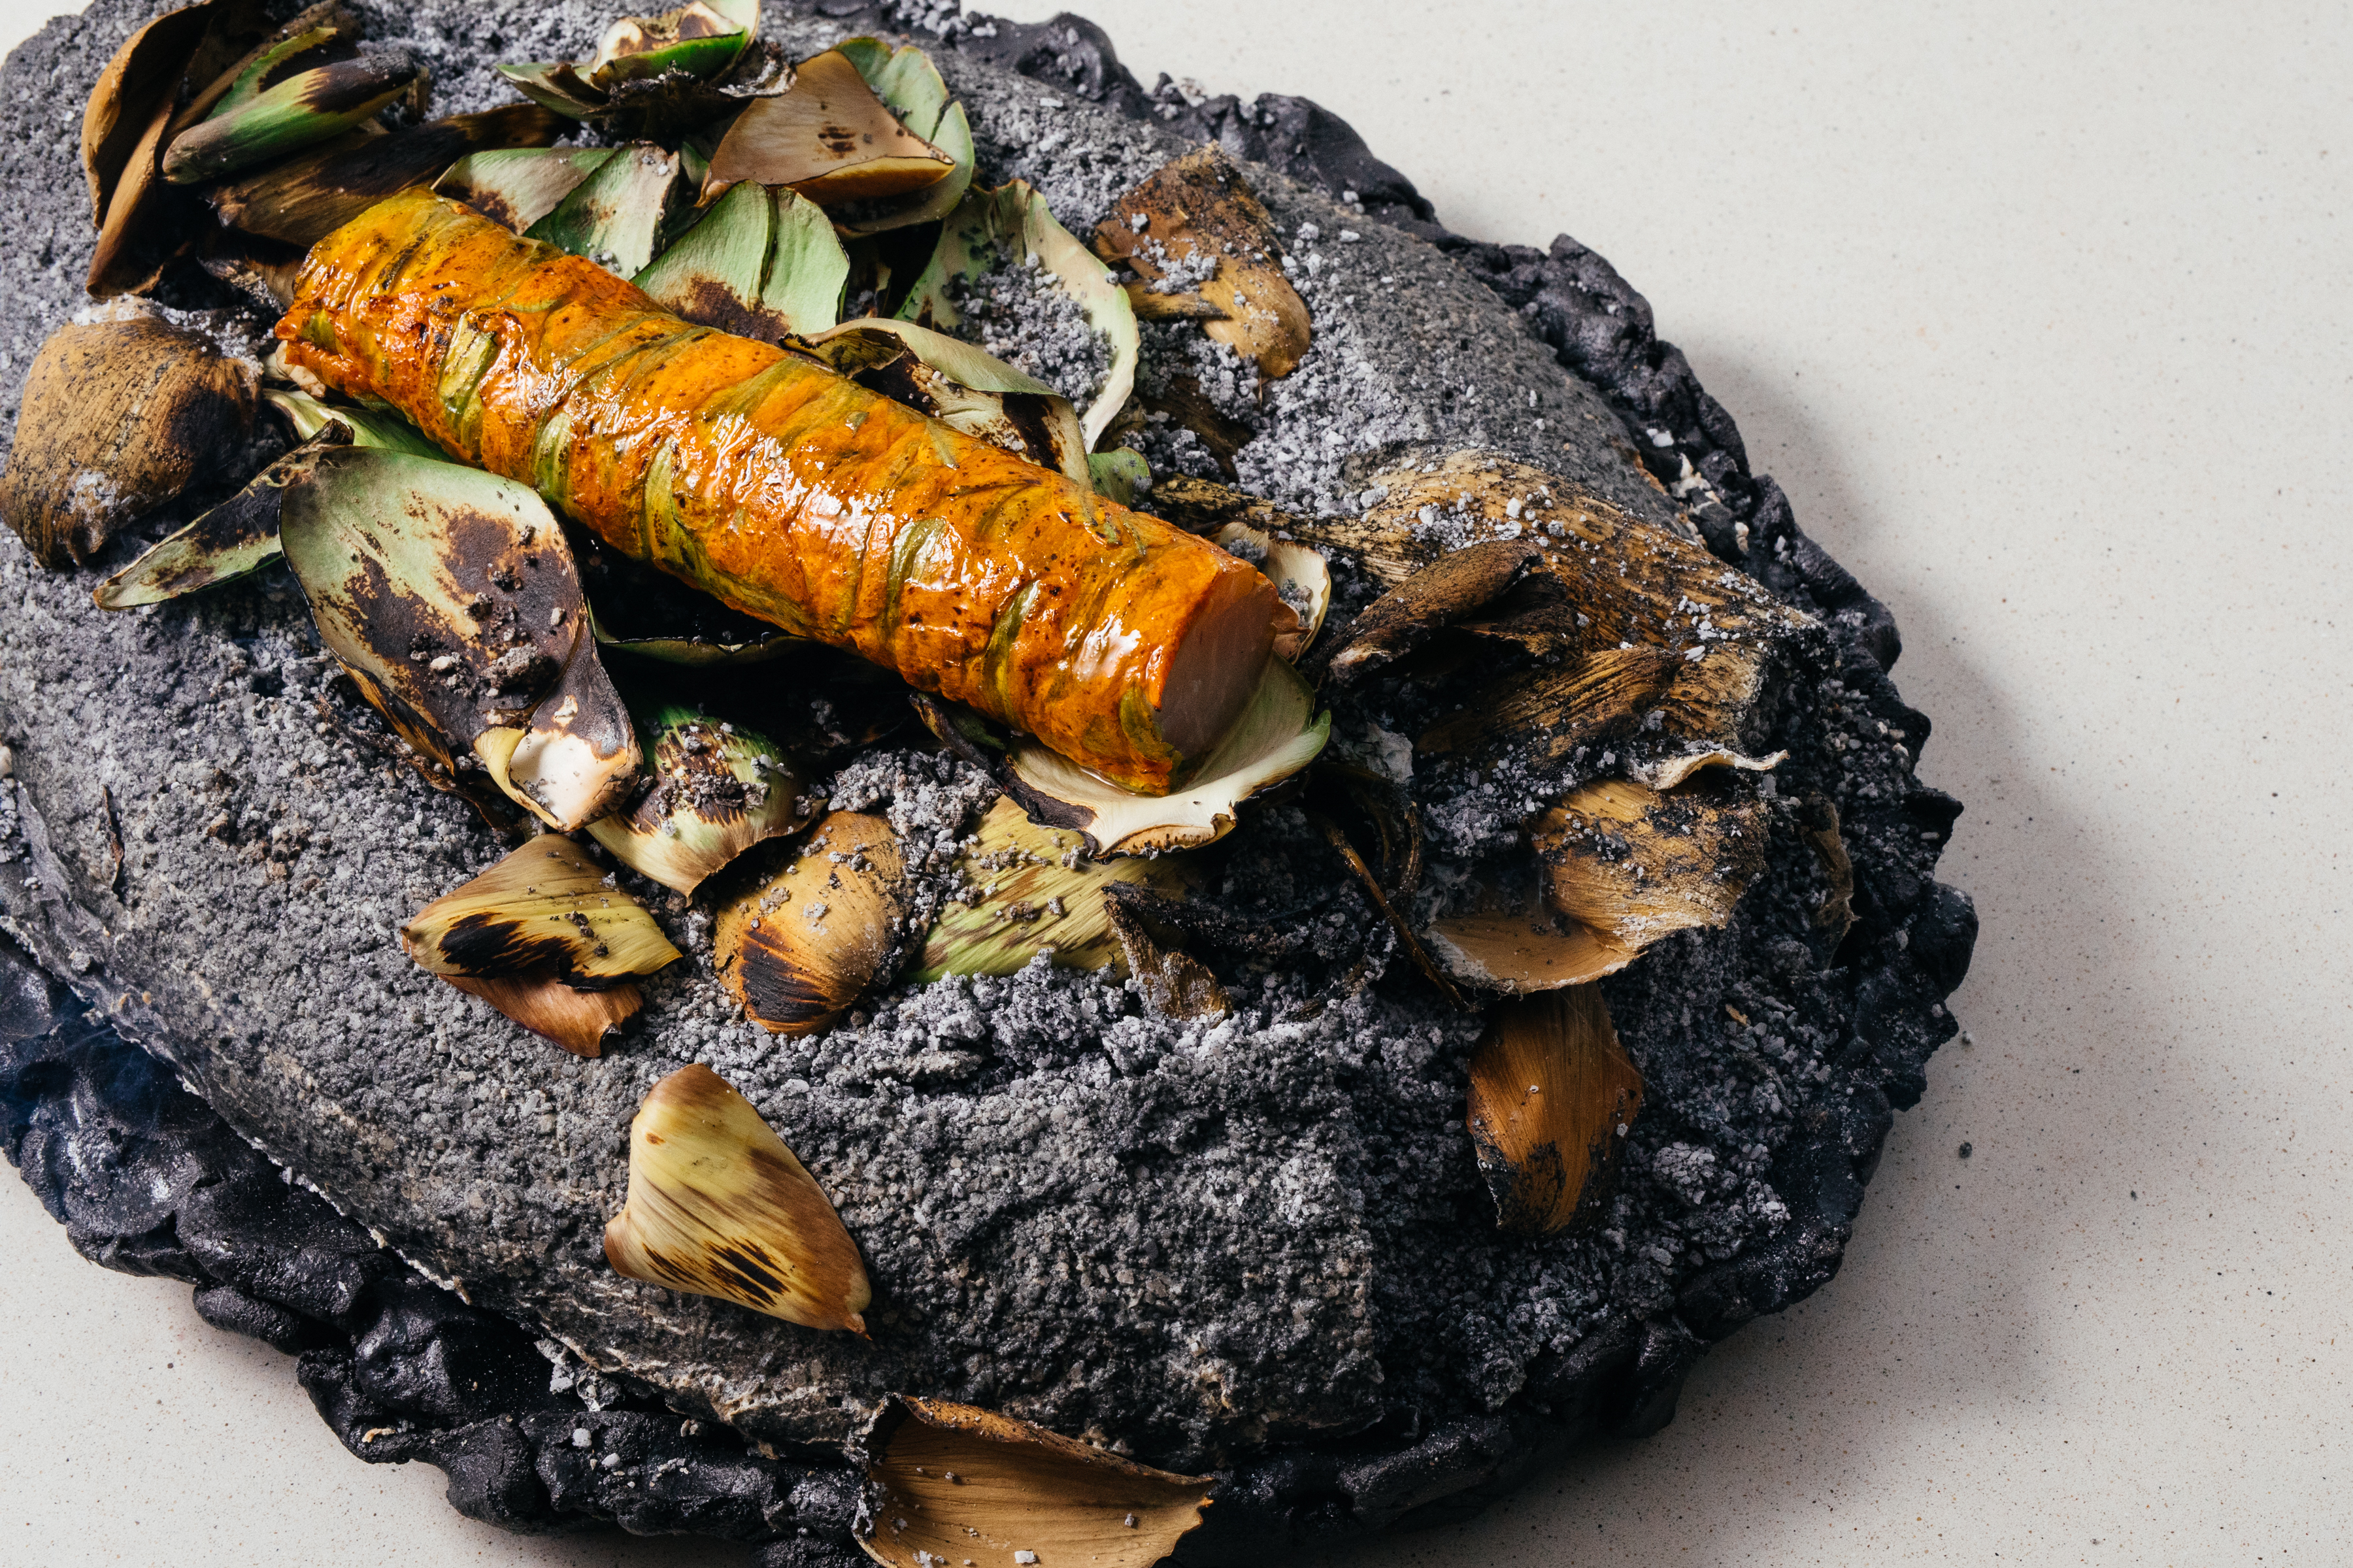 Sable fish wrapped in squash blossoms and salt baked. The salt bake is seasoned with roasted artichoke leaves.